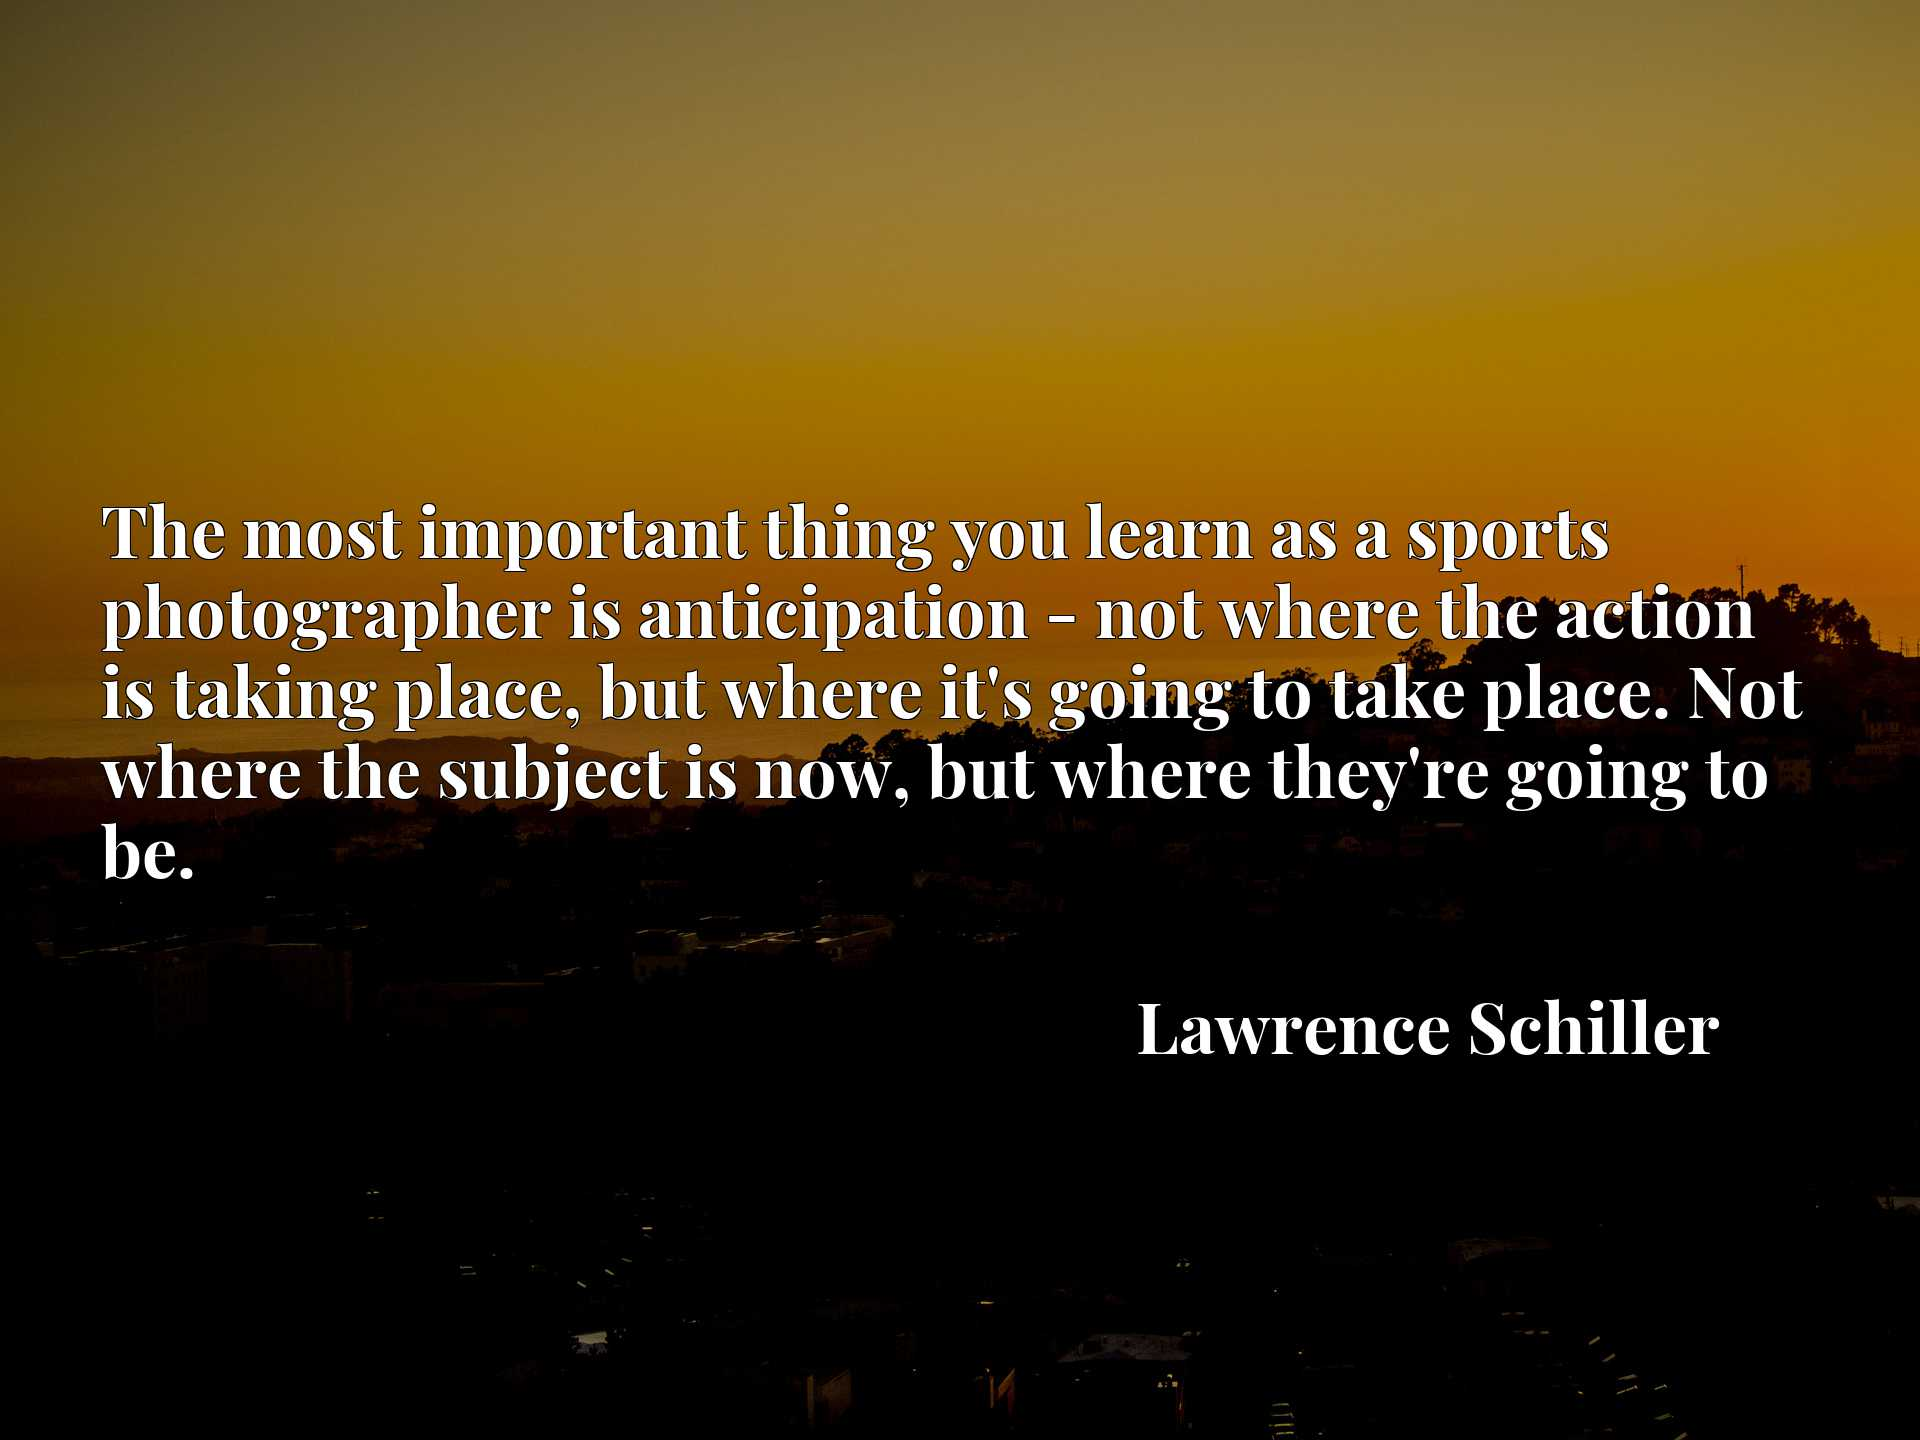 Quote Picture :The most important thing you learn as a sports photographer is anticipation - not where the action is taking place, but where it's going to take place. Not where the subject is now, but where they're going to be.